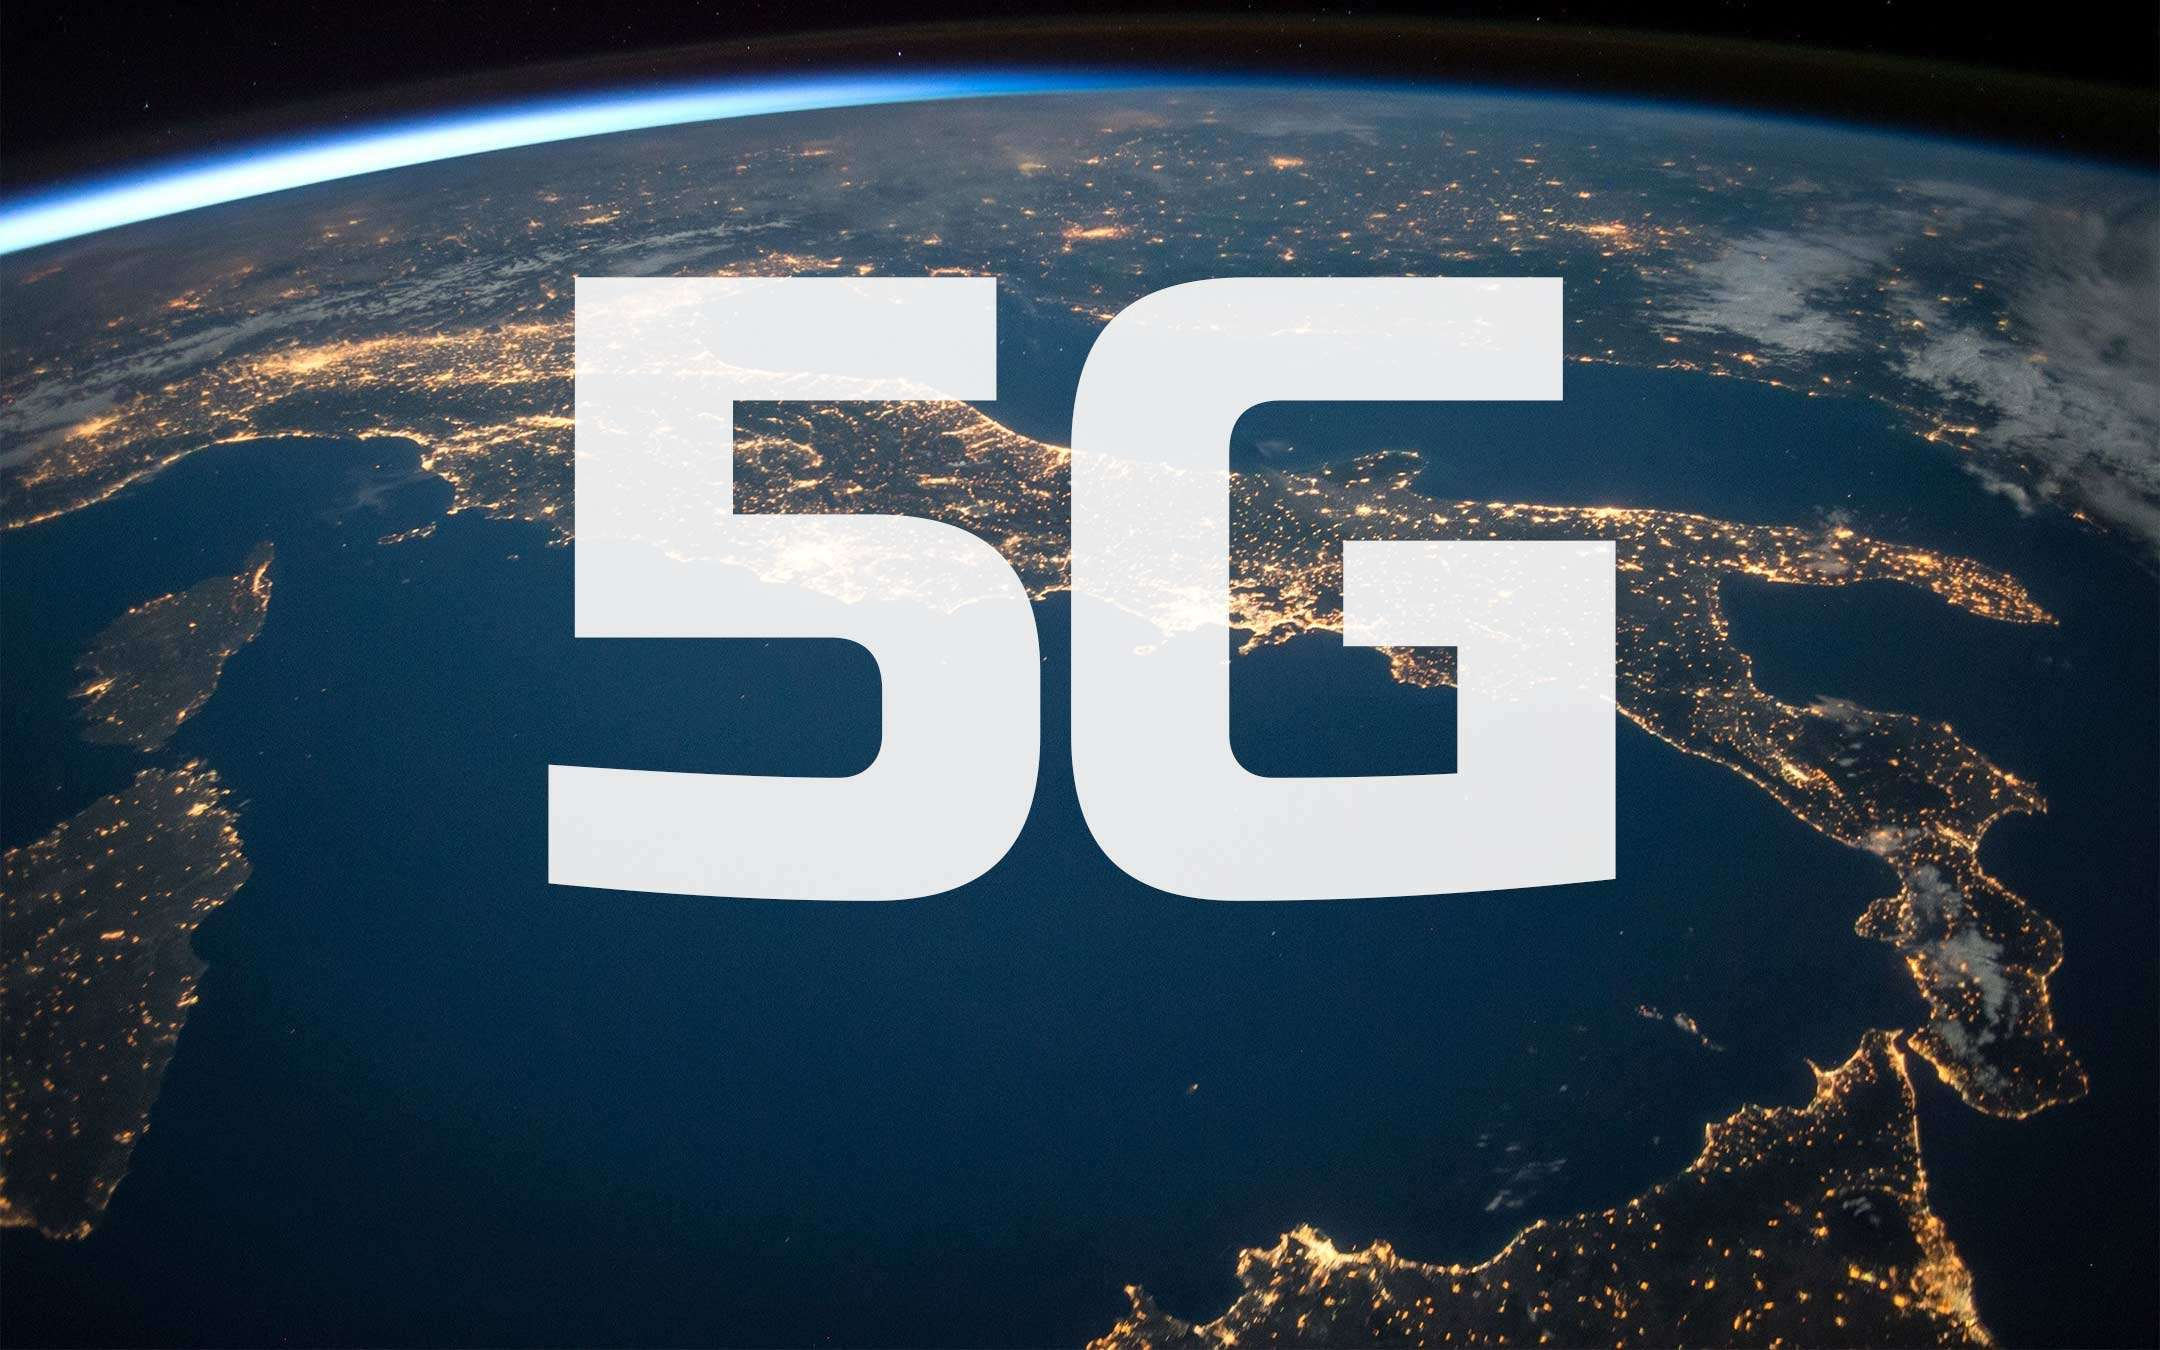 In Italy, 5G is going strong, very strong